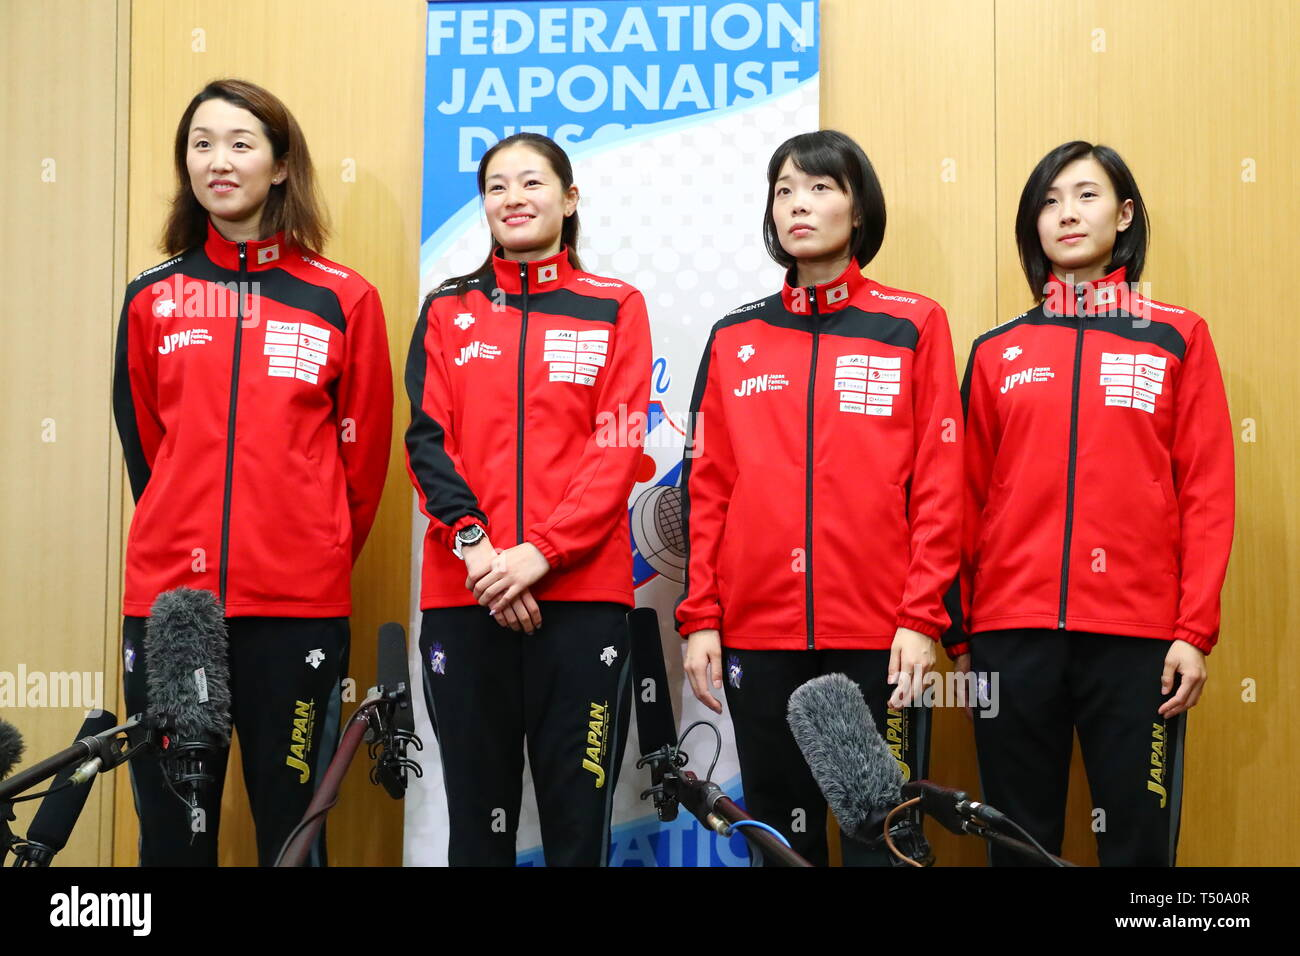 Ajinomoto National Training Center, Tokyo, Japan. 19th Apr, 2019. (L-R) Nozomi Sato, Ayumu Saito, Rie Yamada, Haruna Baba (JPN), APRIL 19, 2019 - Fencing : Japan National Team Training Session at Ajinomoto National Training Center, Tokyo, Japan. Credit: Naoki Nishimura/AFLO SPORT/Alamy Live News Stock Photo